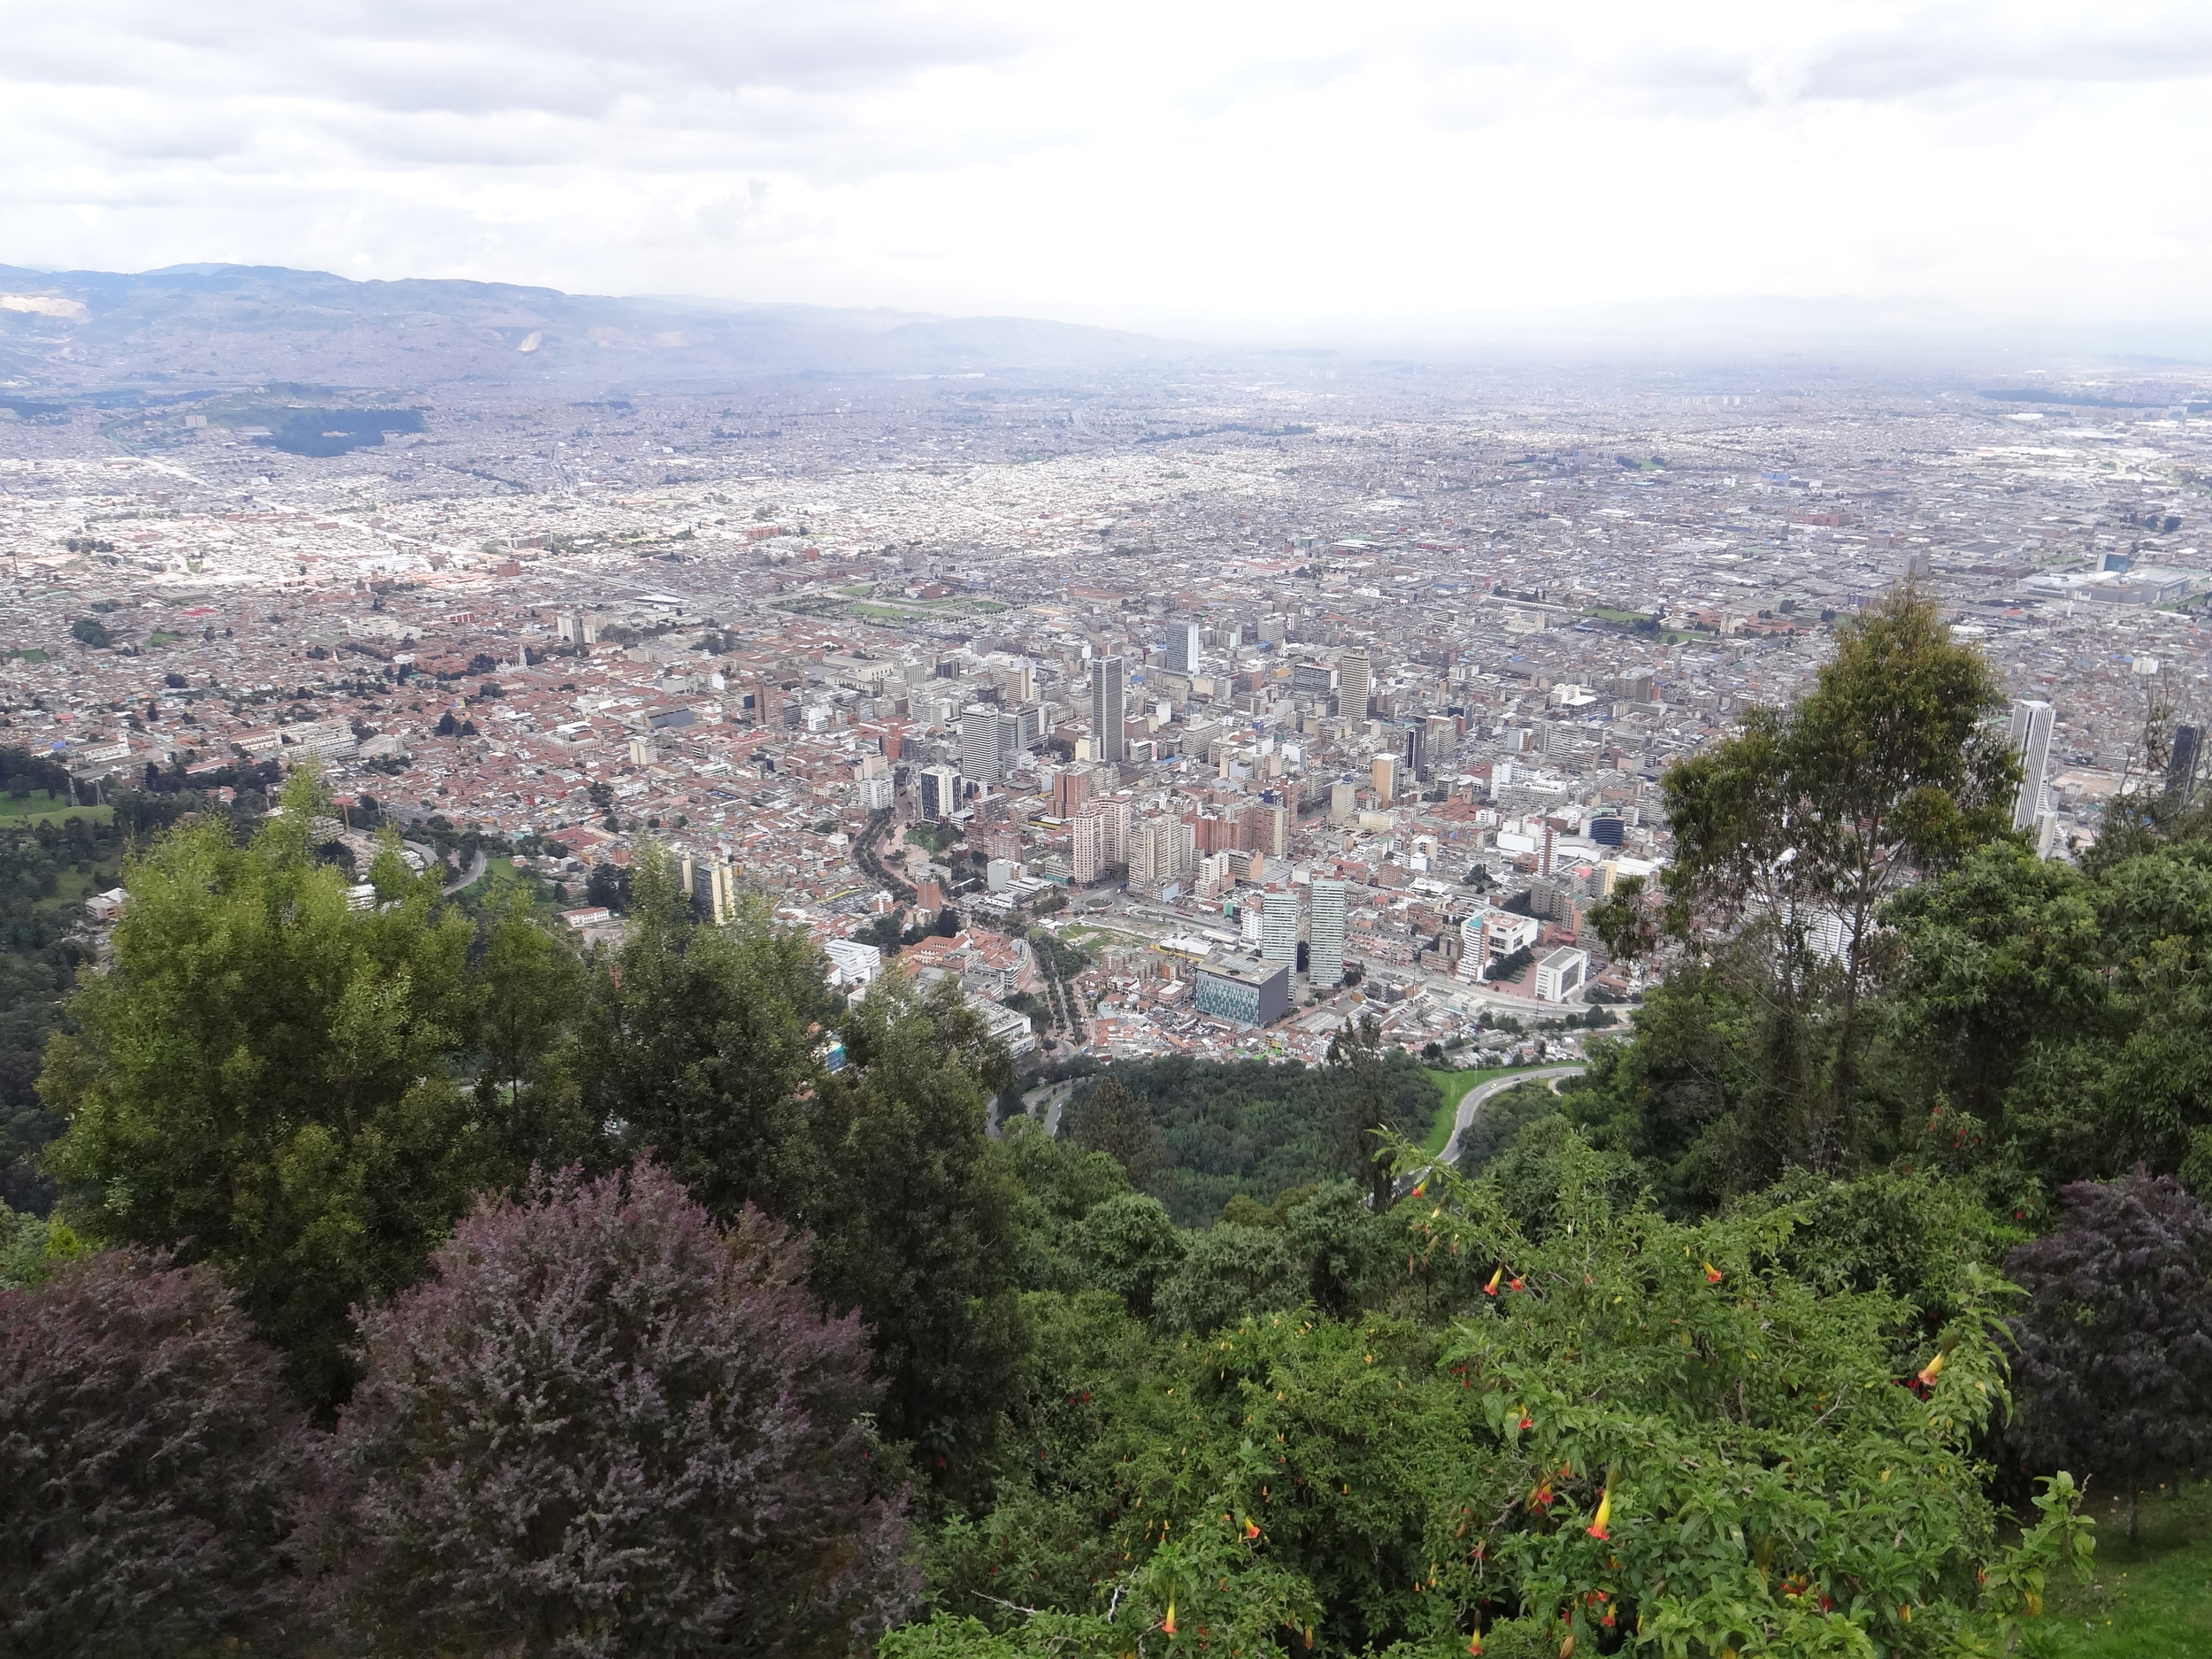 The view of Bogota from Monserrate Mountain.